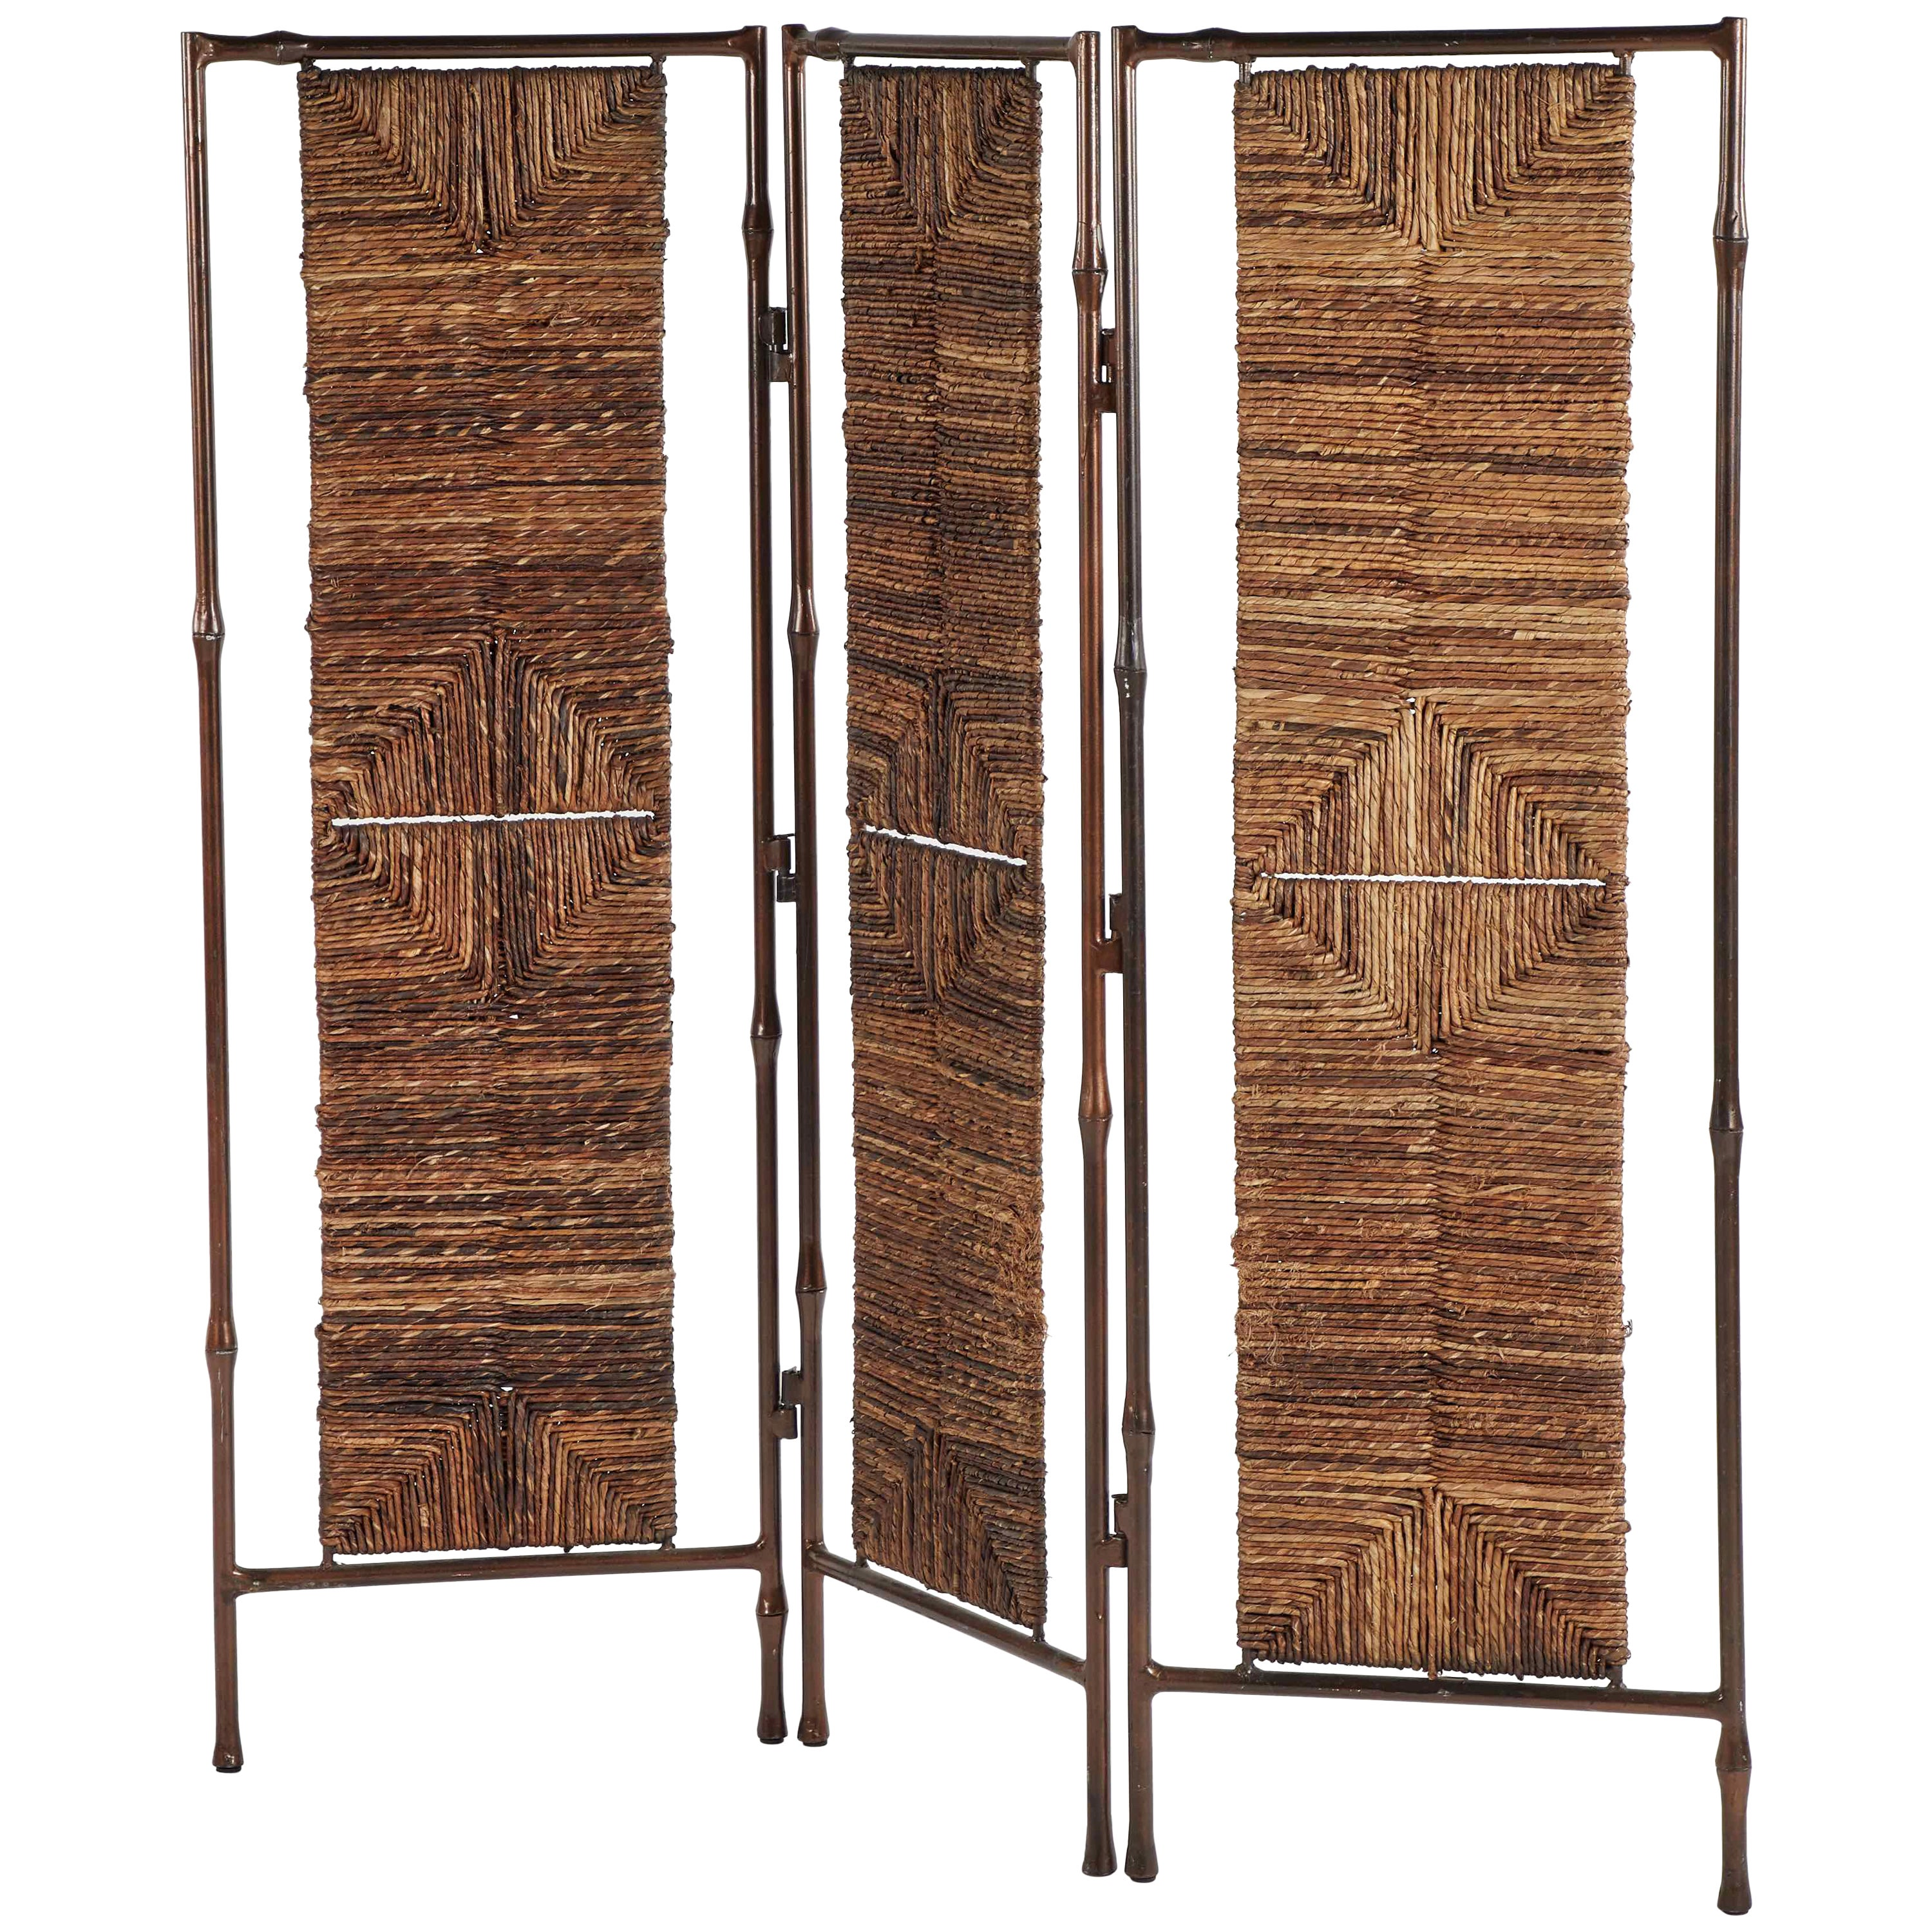 Metal and Rattan Screen or Room Divider from England